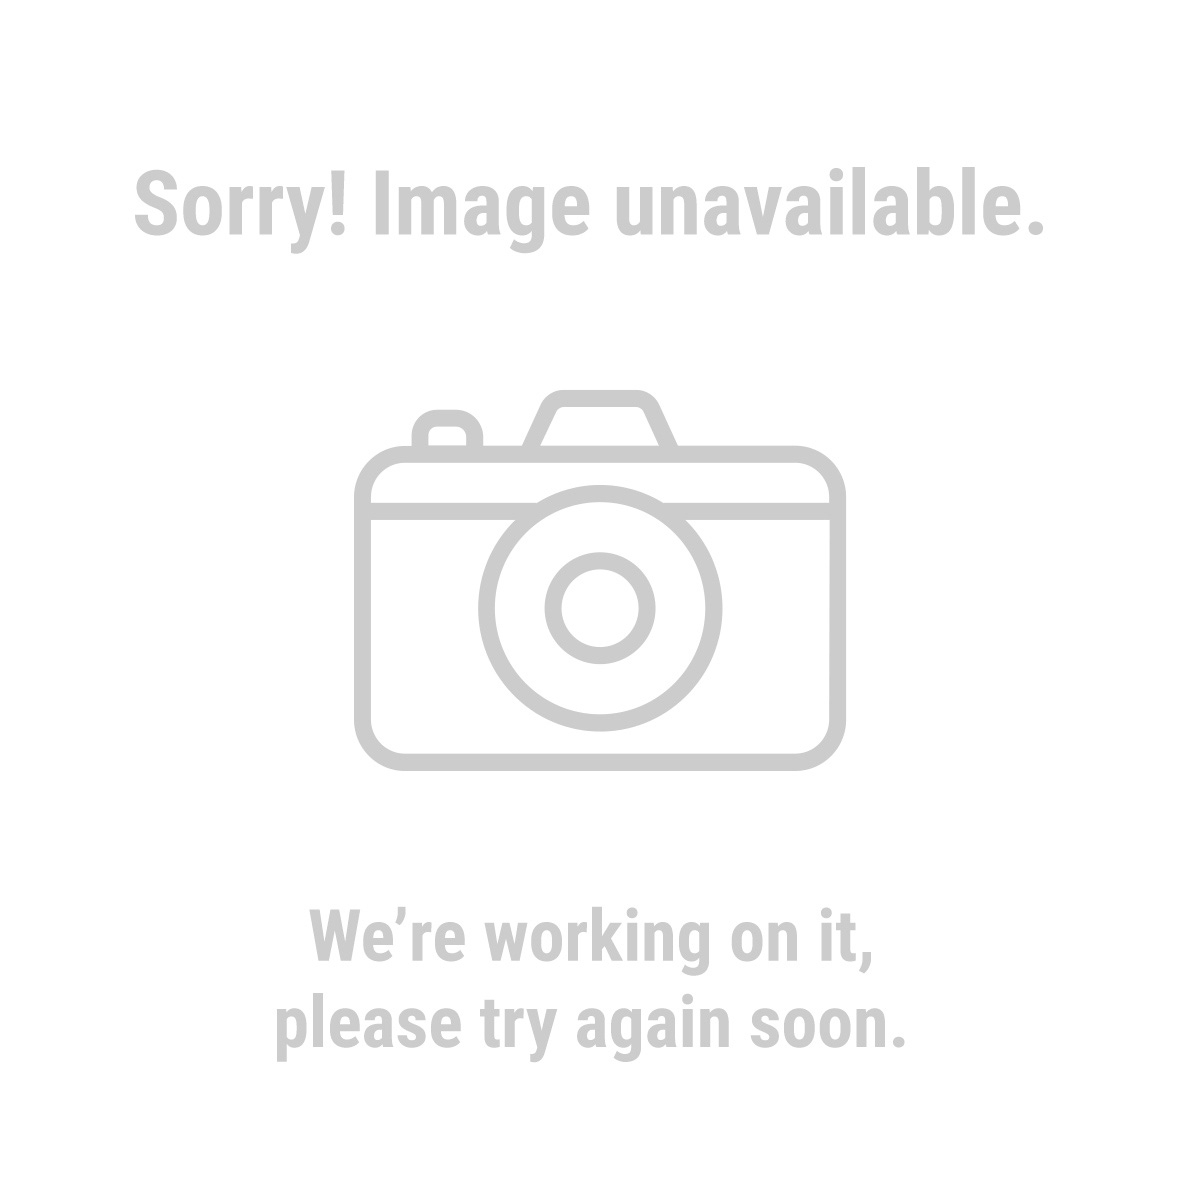 36 Piece SAE/Metric Hex Key Set